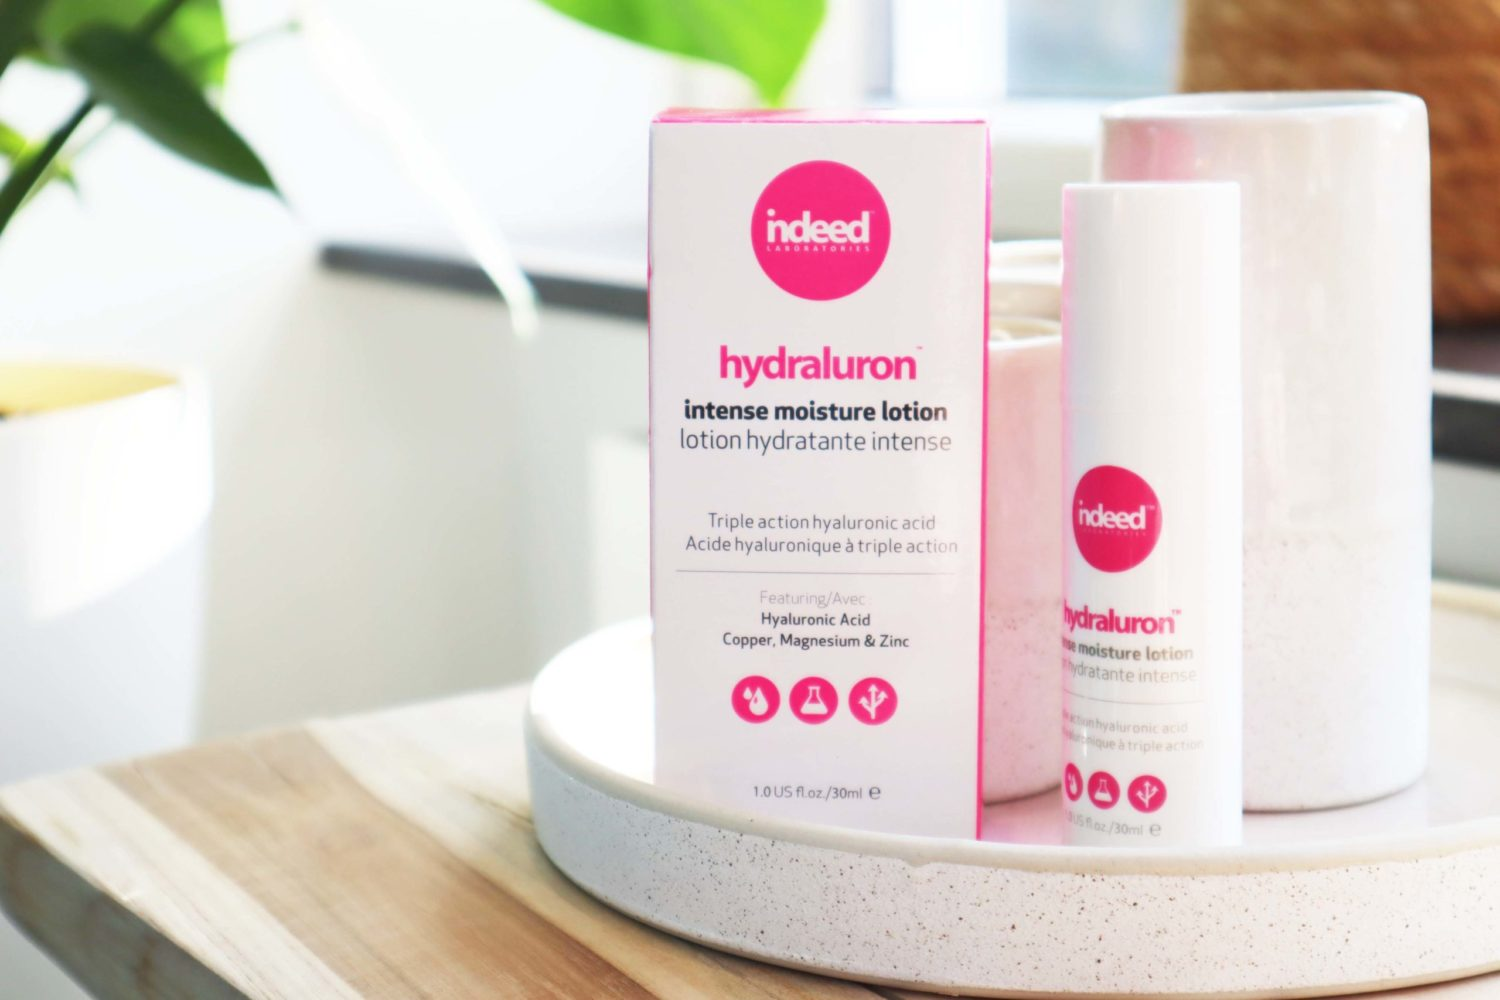 indeed Hydraluron Intense Moisture Lotion